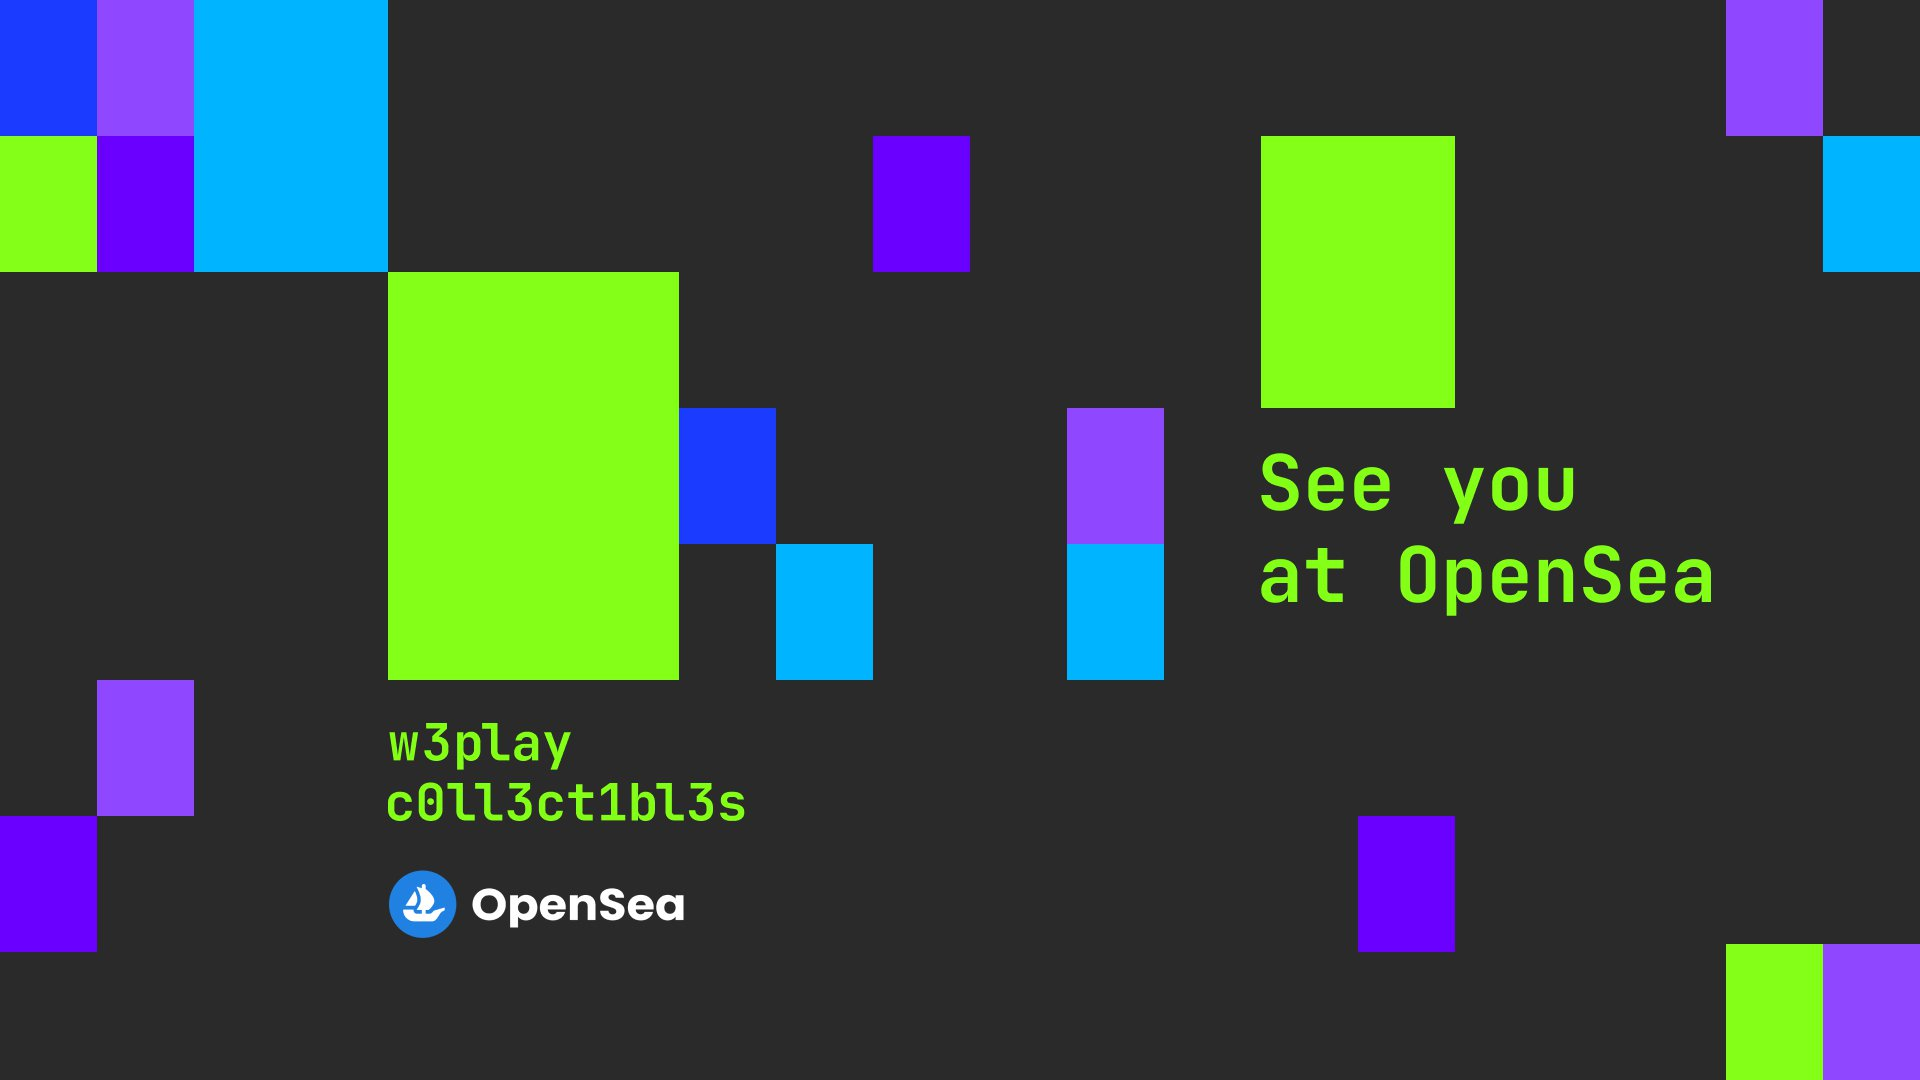 WePlay Collectibles: see you at OpenSea. Image: WePlay Holding